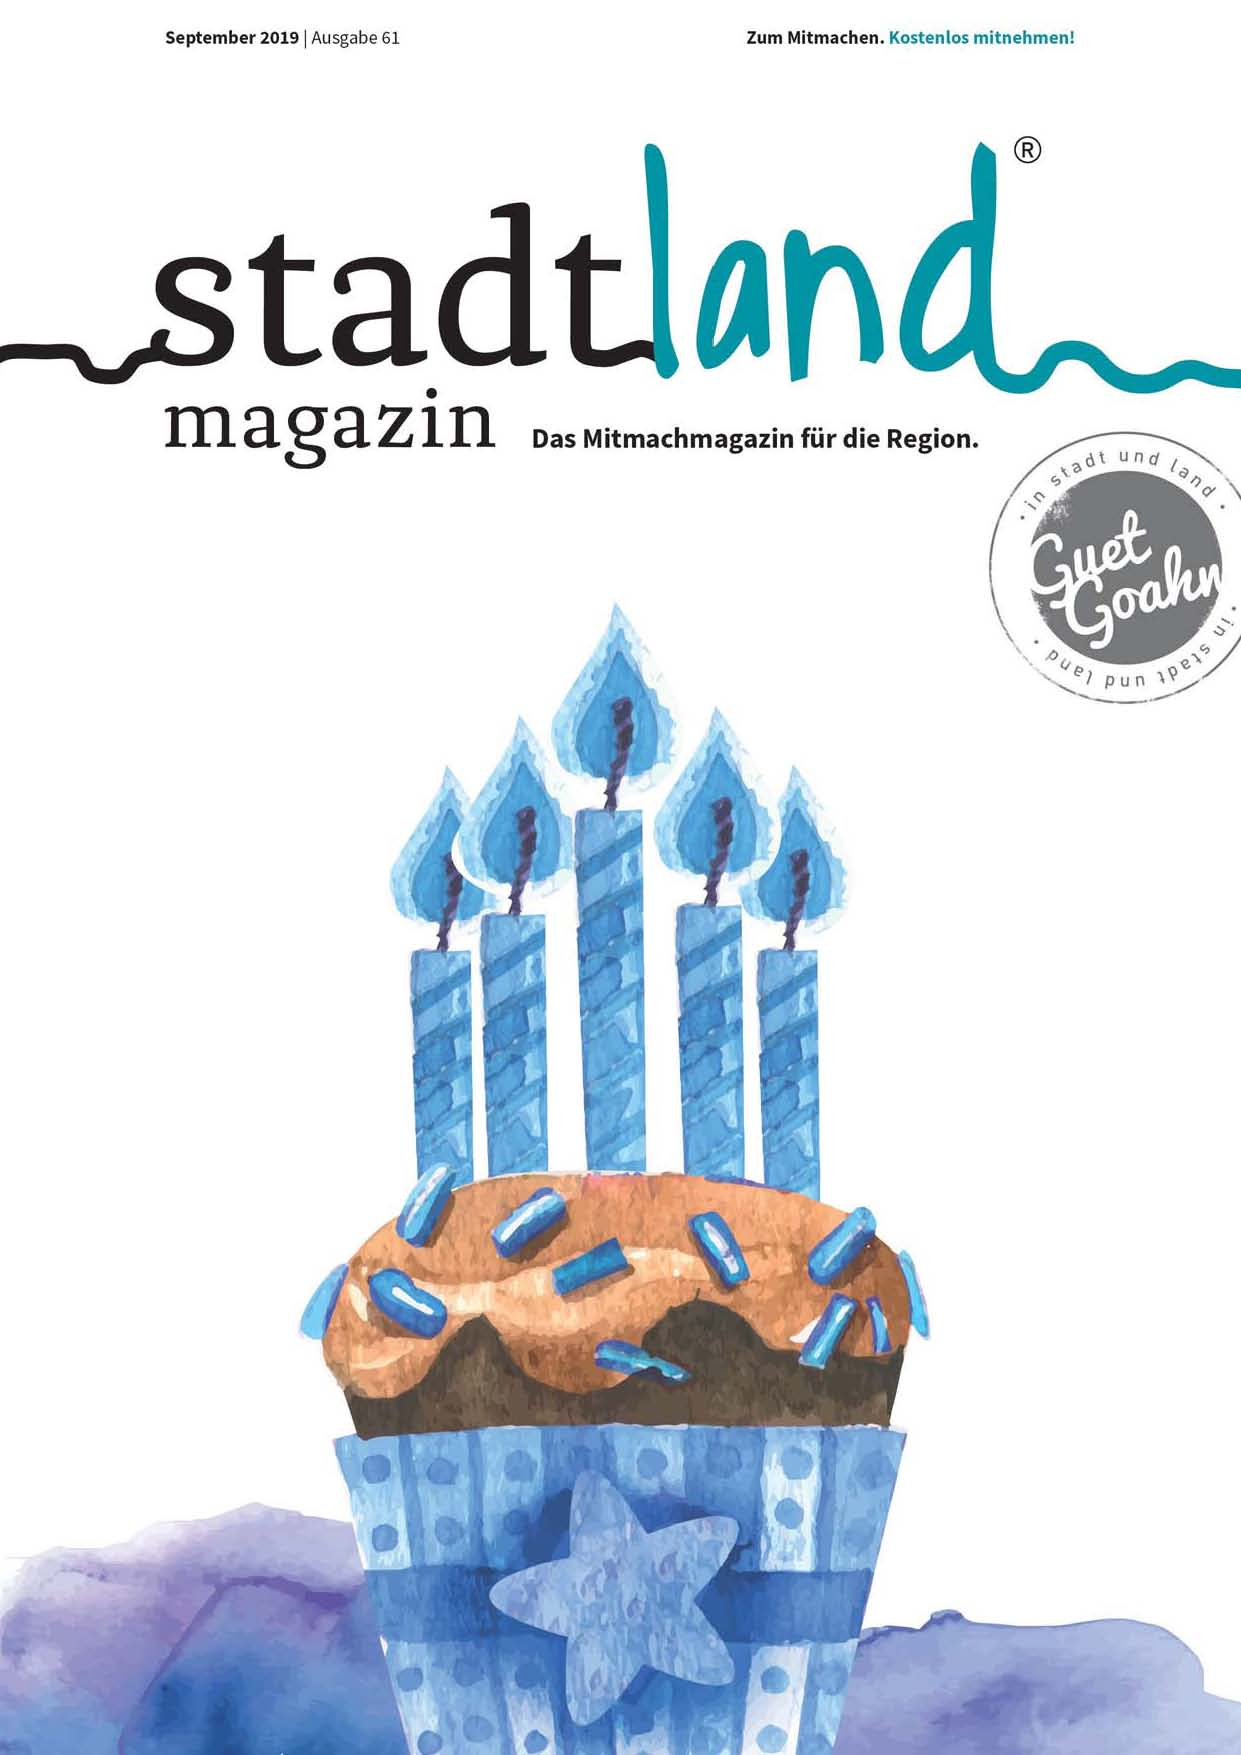 stadtland magazin September 2019